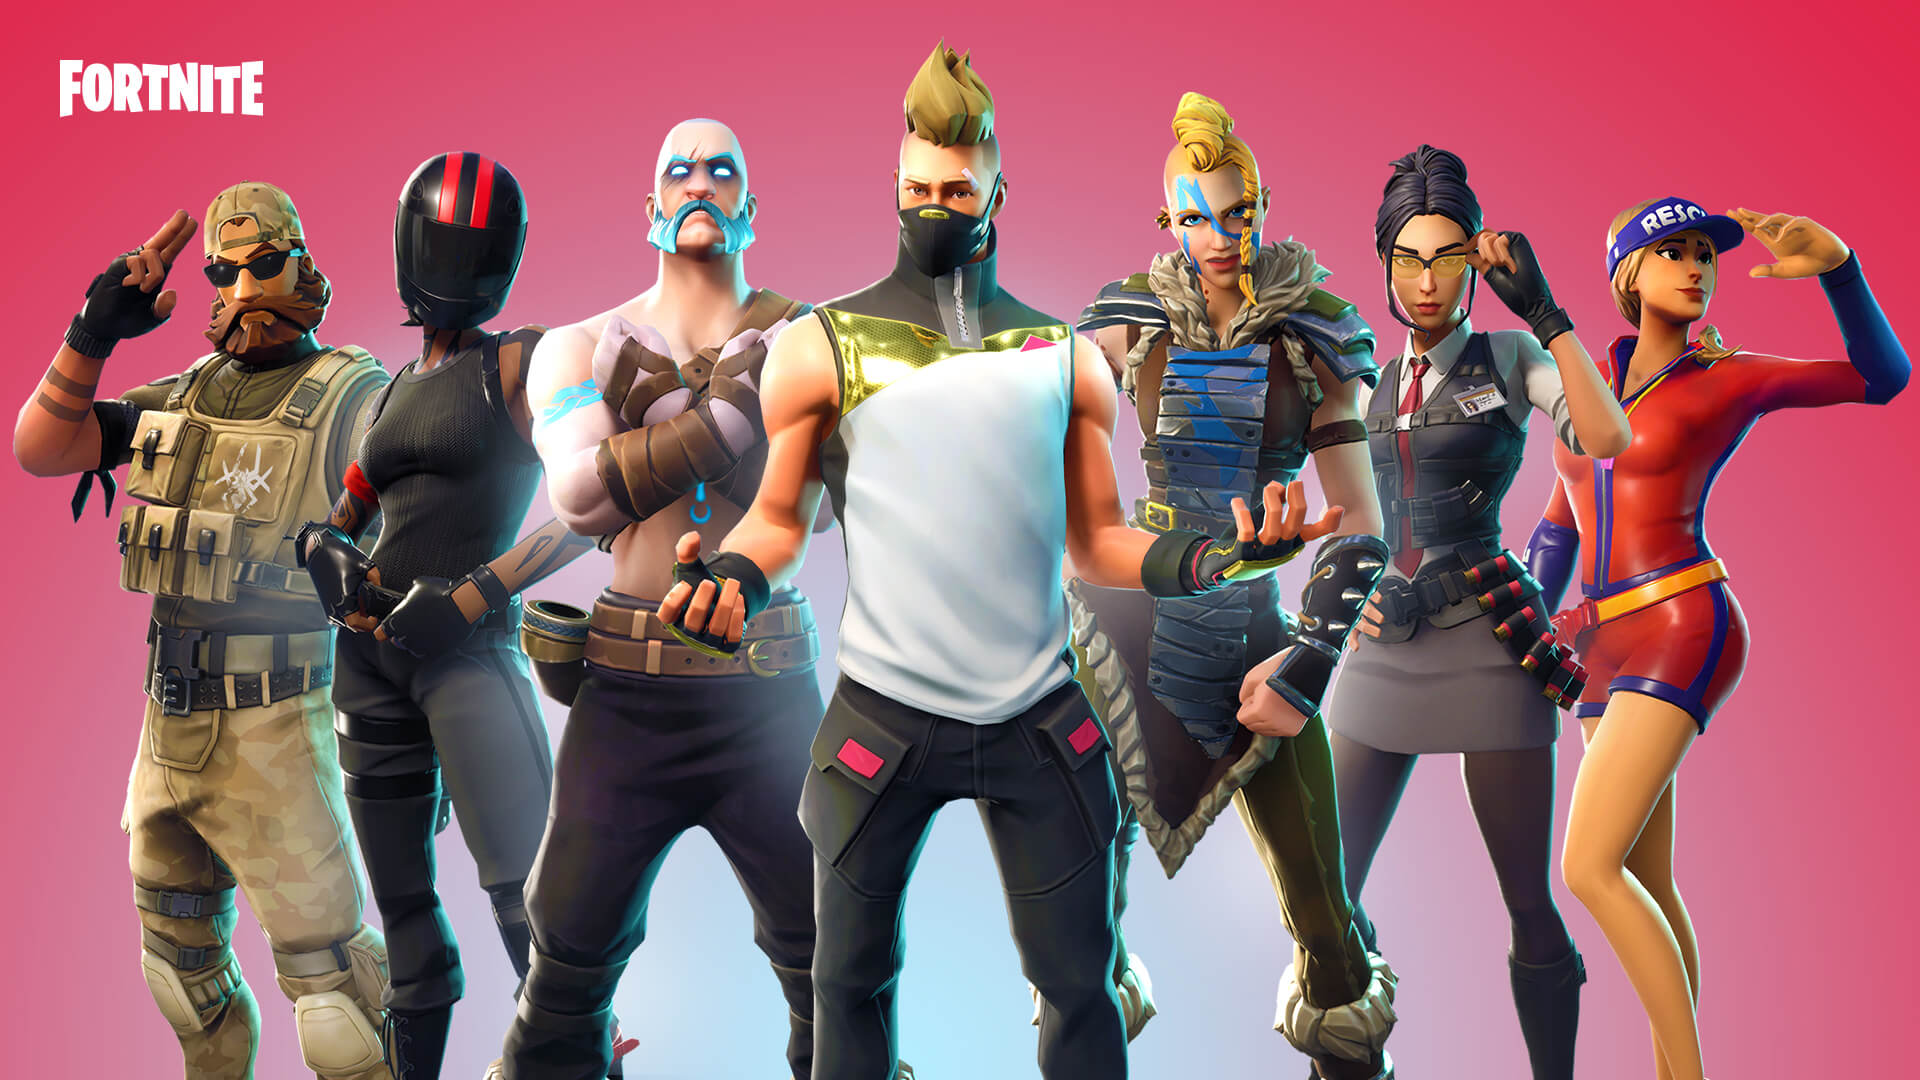 FORTNITE AVAILABLE ON OUR GAME TRUCKS -